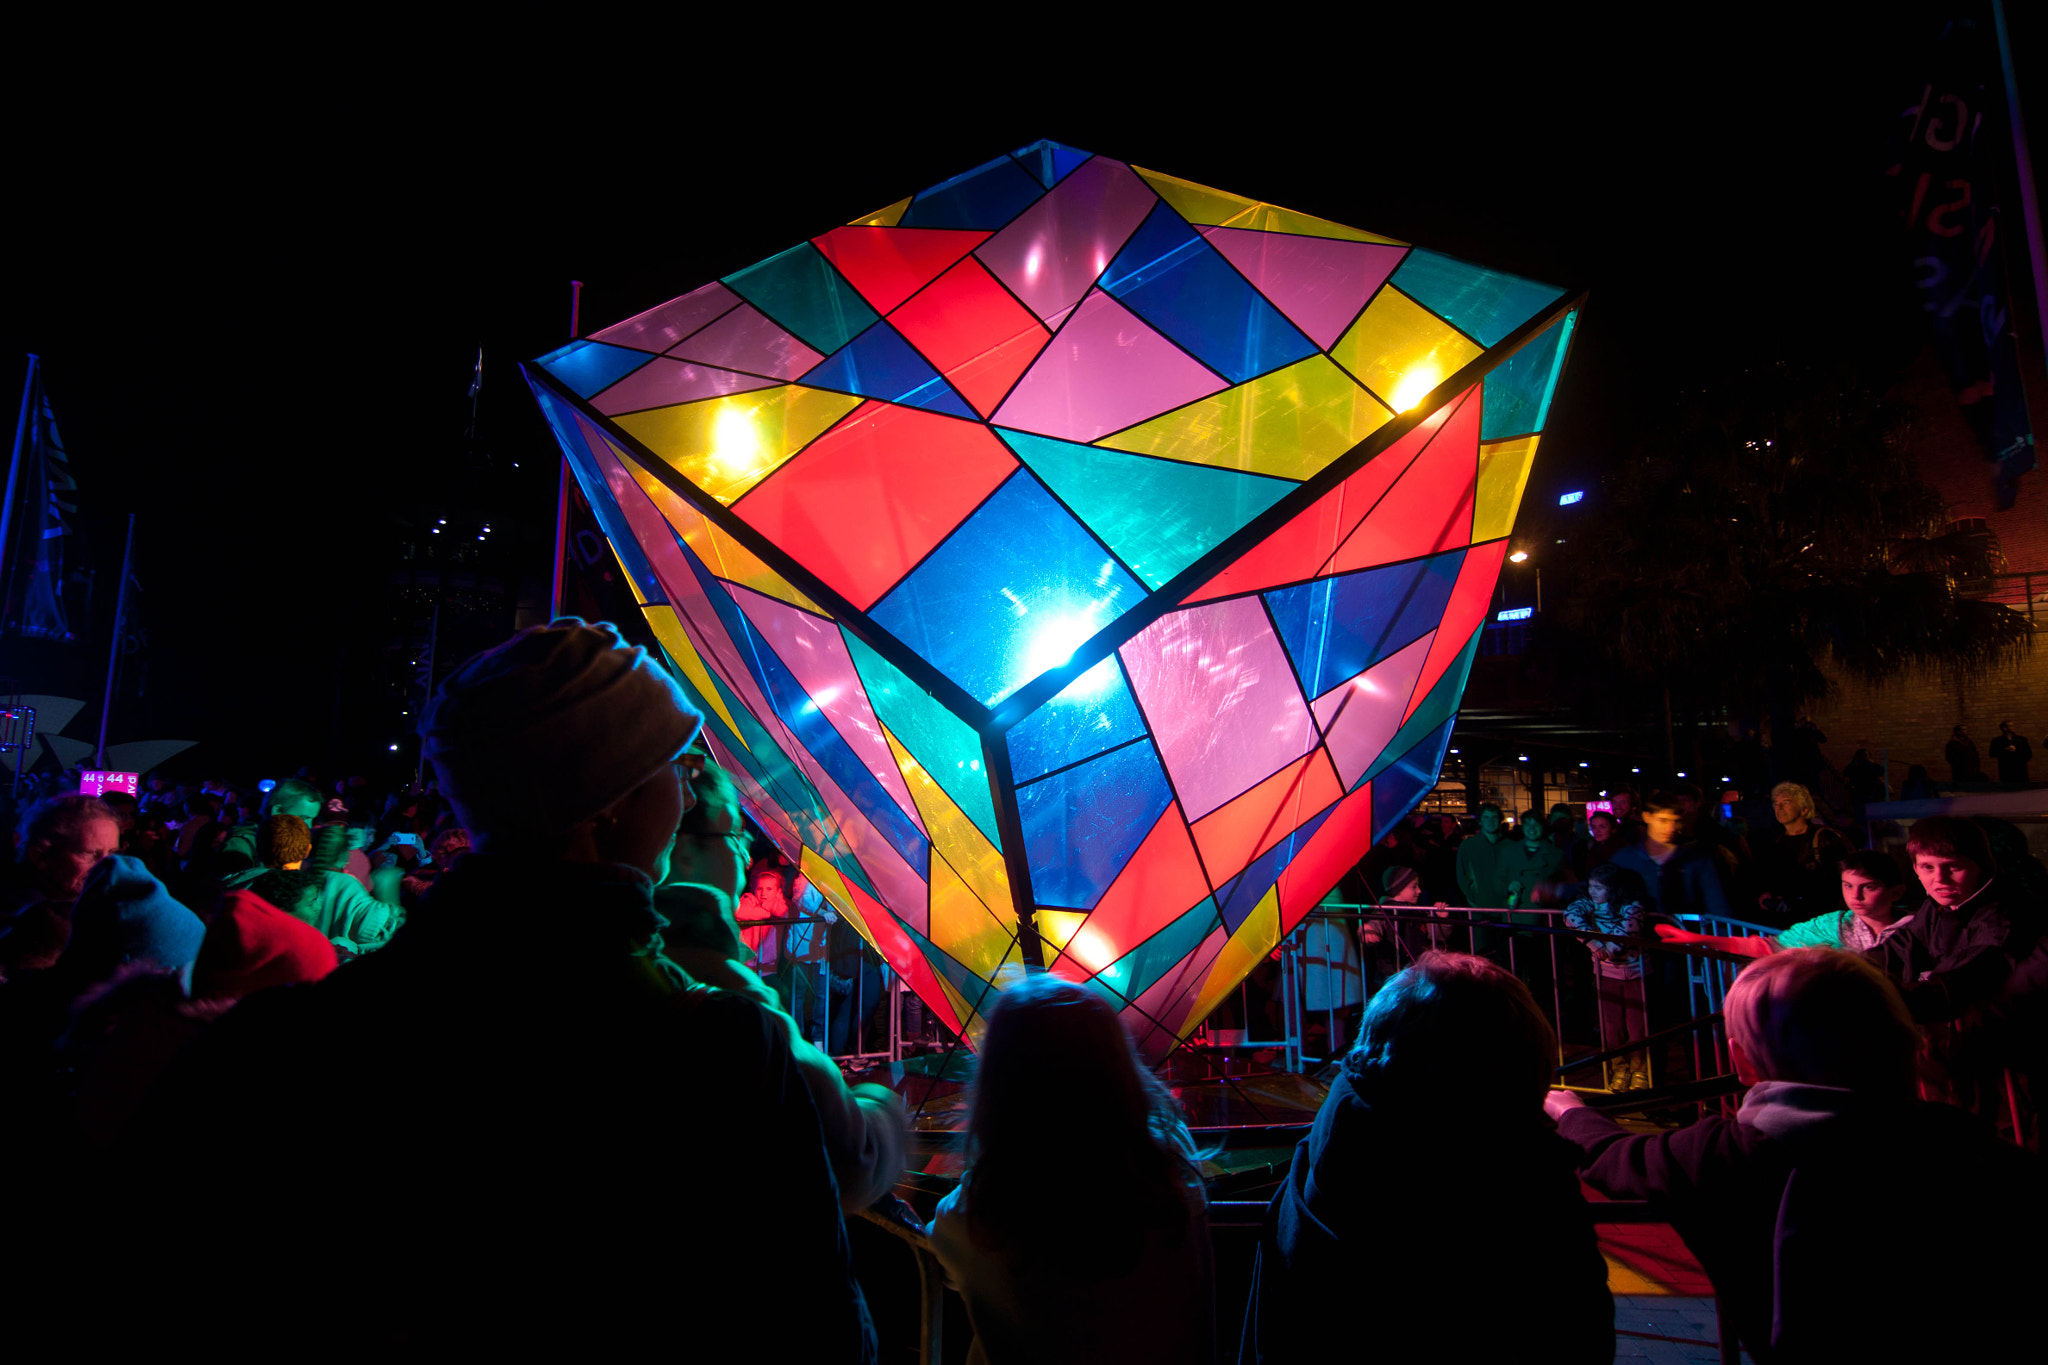 Photograph The cube from Vivid 2012 by Brendan Yu on 500px